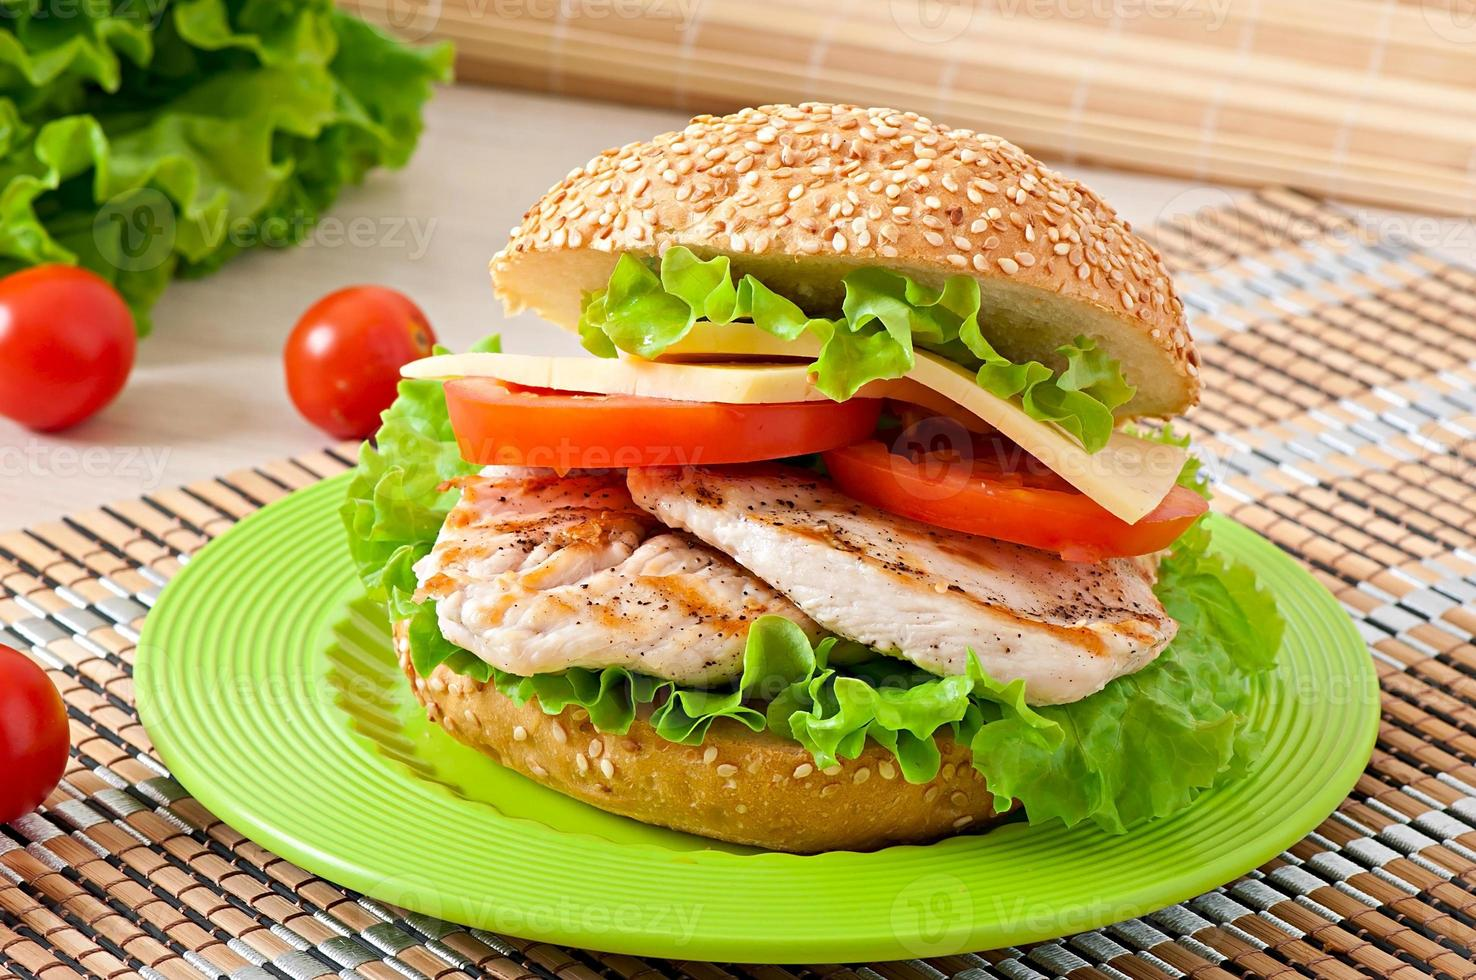 Chicken sandwich with salad and tomato photo